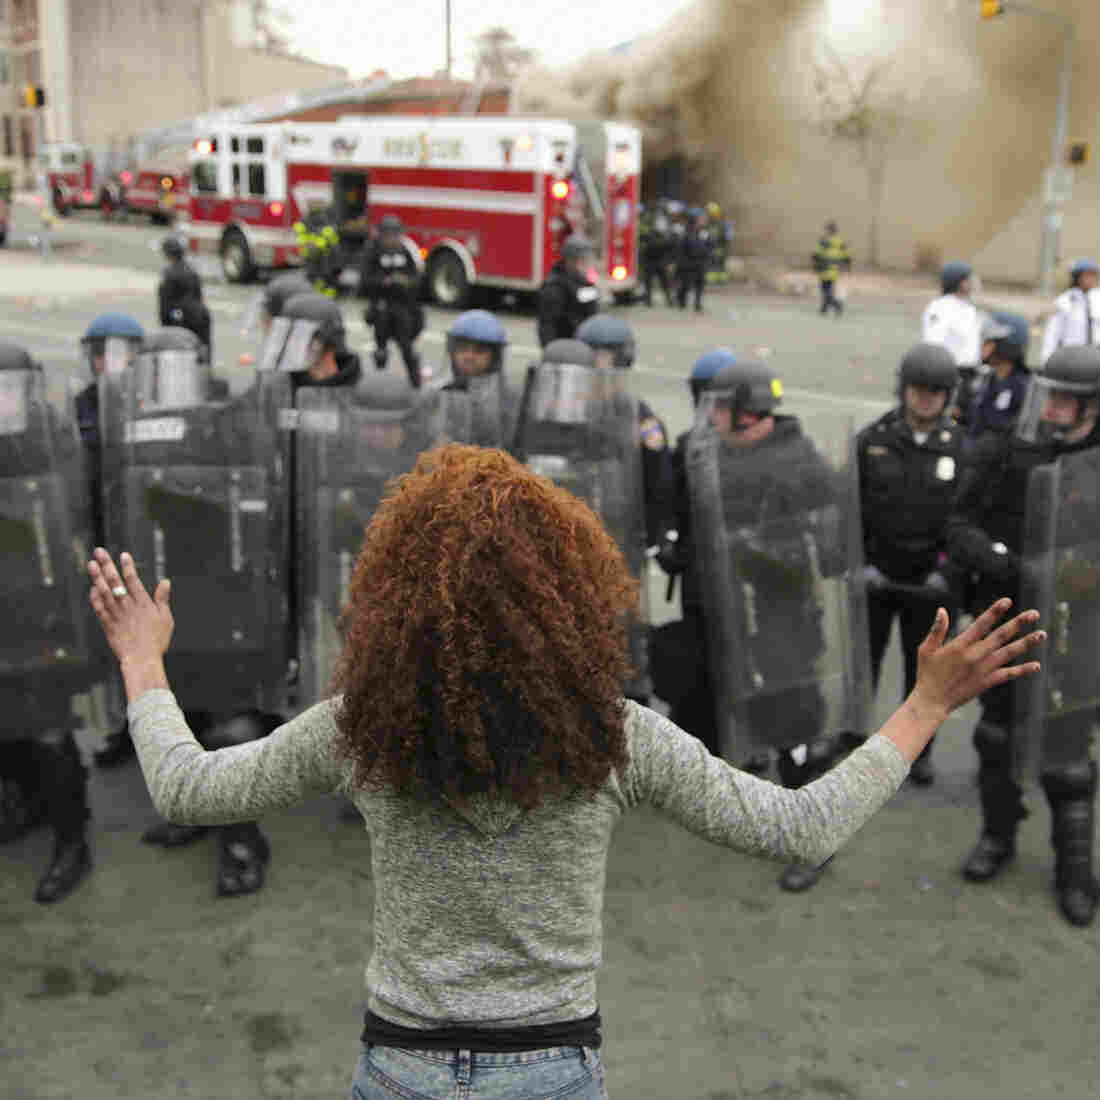 A woman faces a line of Baltimore police officers in riot gear.